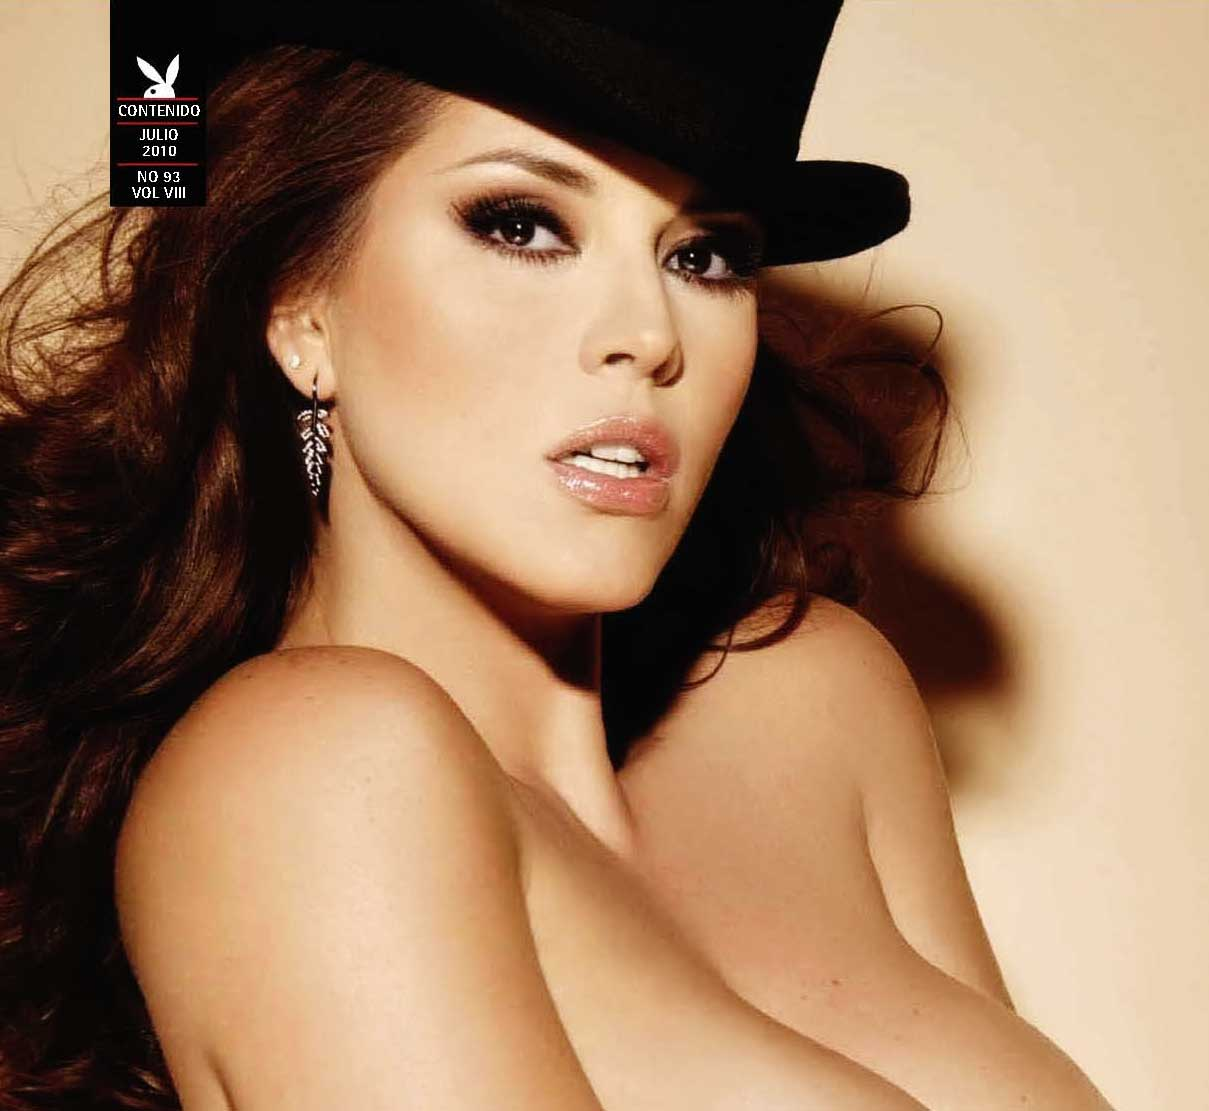 Video De Sexo De Alicia Machado